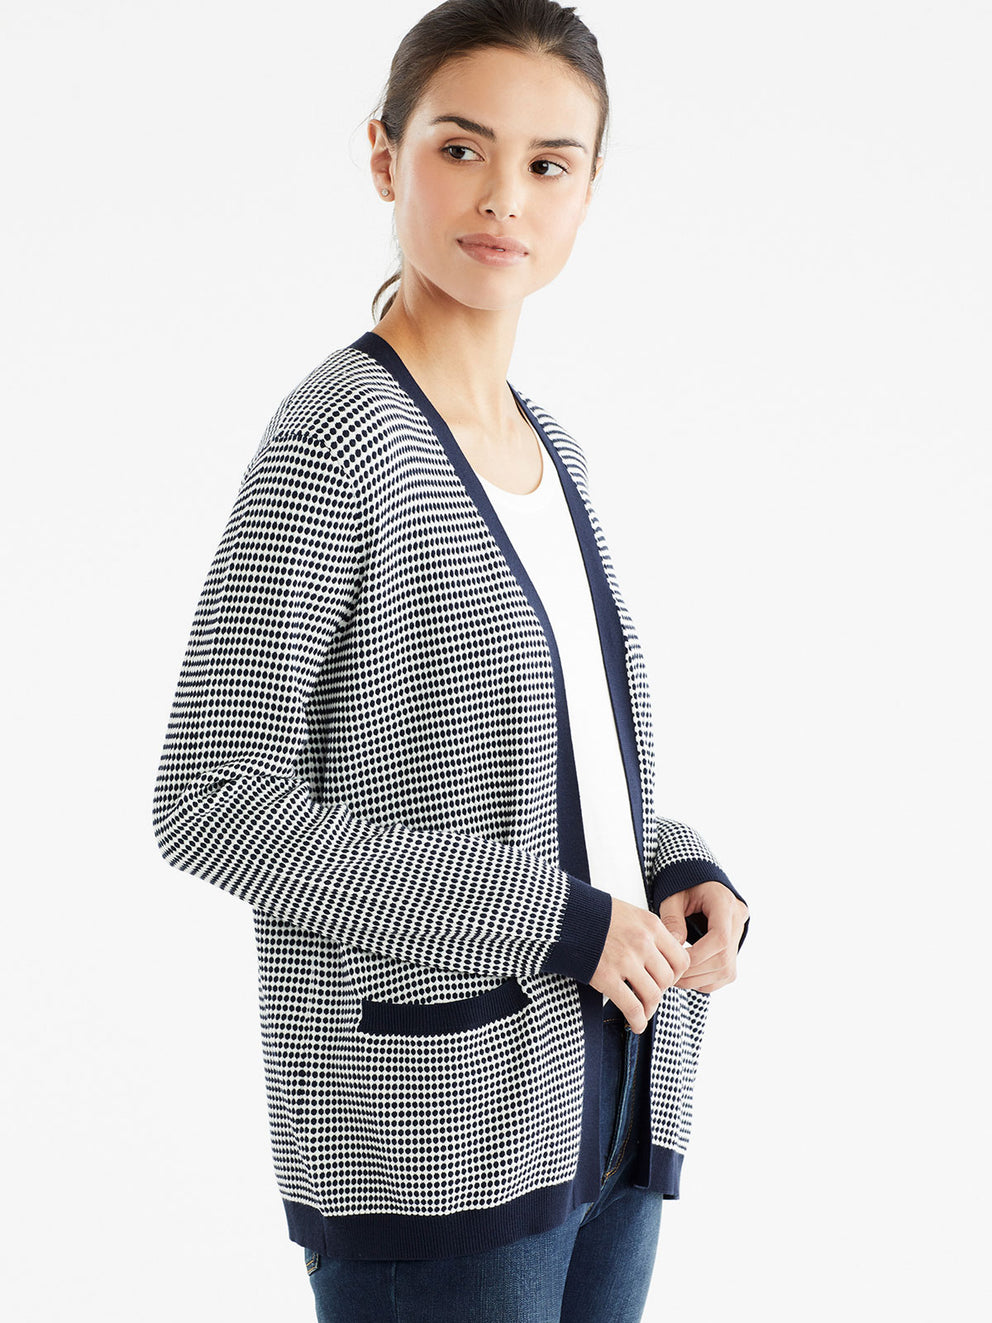 The Jones New York V-Neck Open Cardigan in color Dotted Navy - Image Position 2